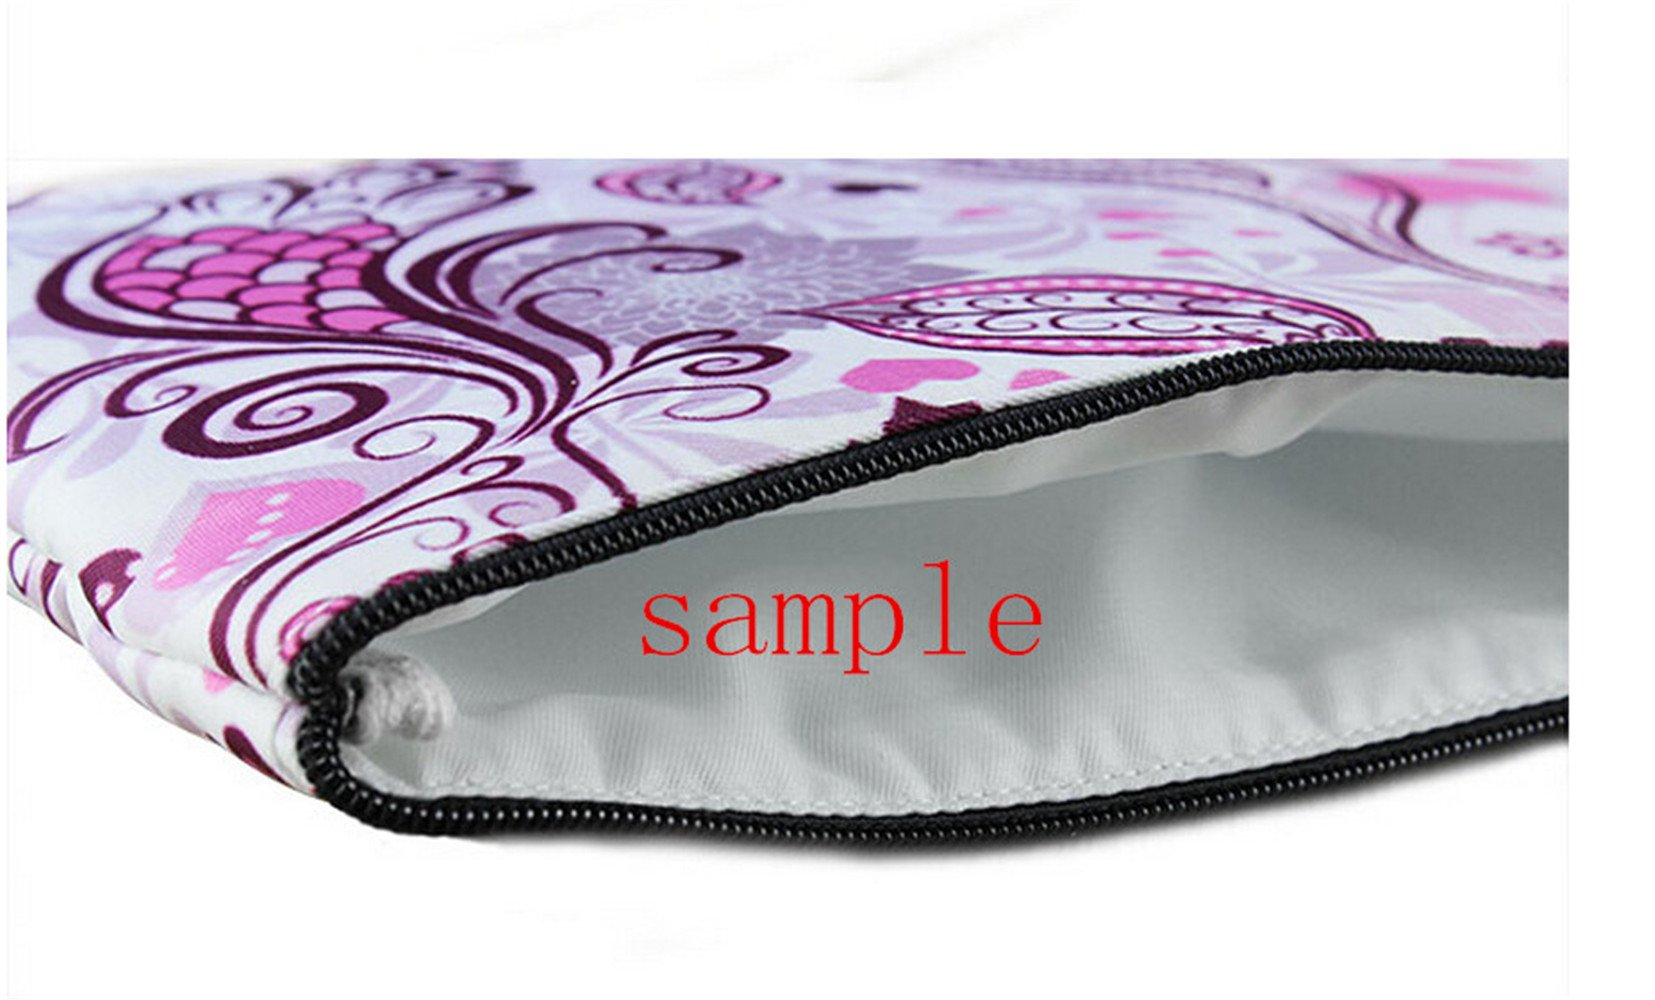 Female X-Large Size Cosmetic Makeup Bag Coin Purse Pouch Cash Bags With Wonder Woman Print X-Large Size